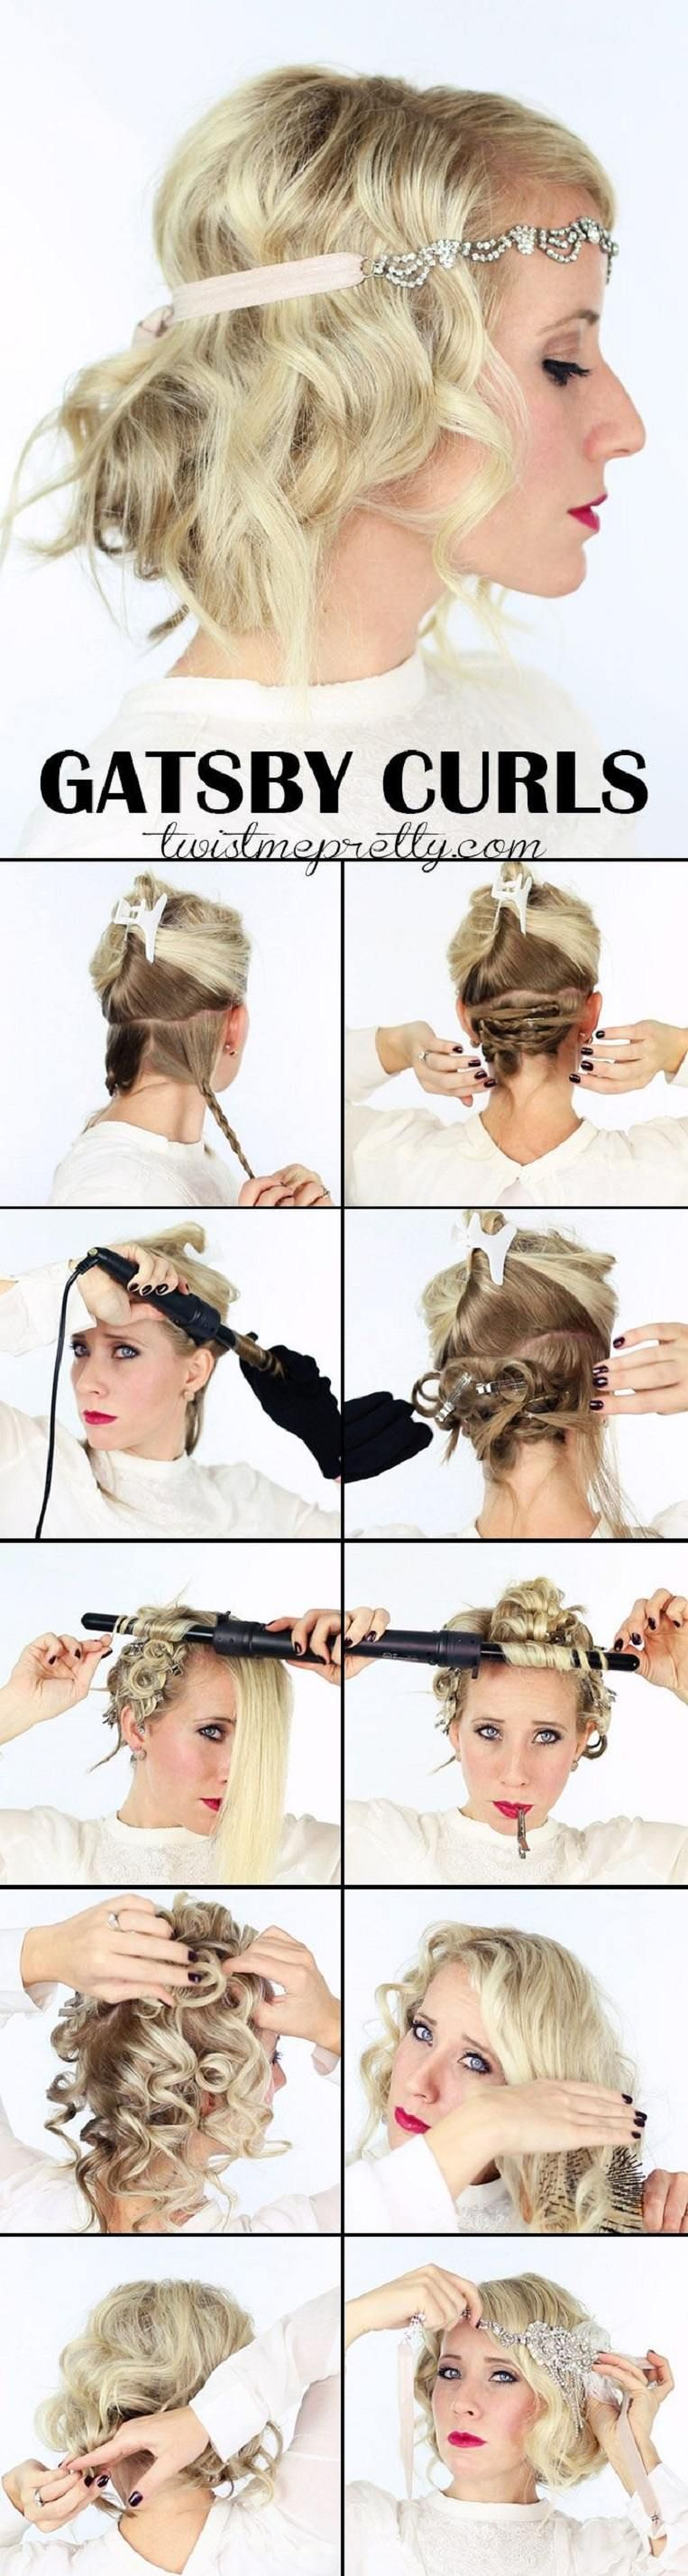 12 Super Easy DIY Wedding Hairstyles | Wedding Hair - Brides ...